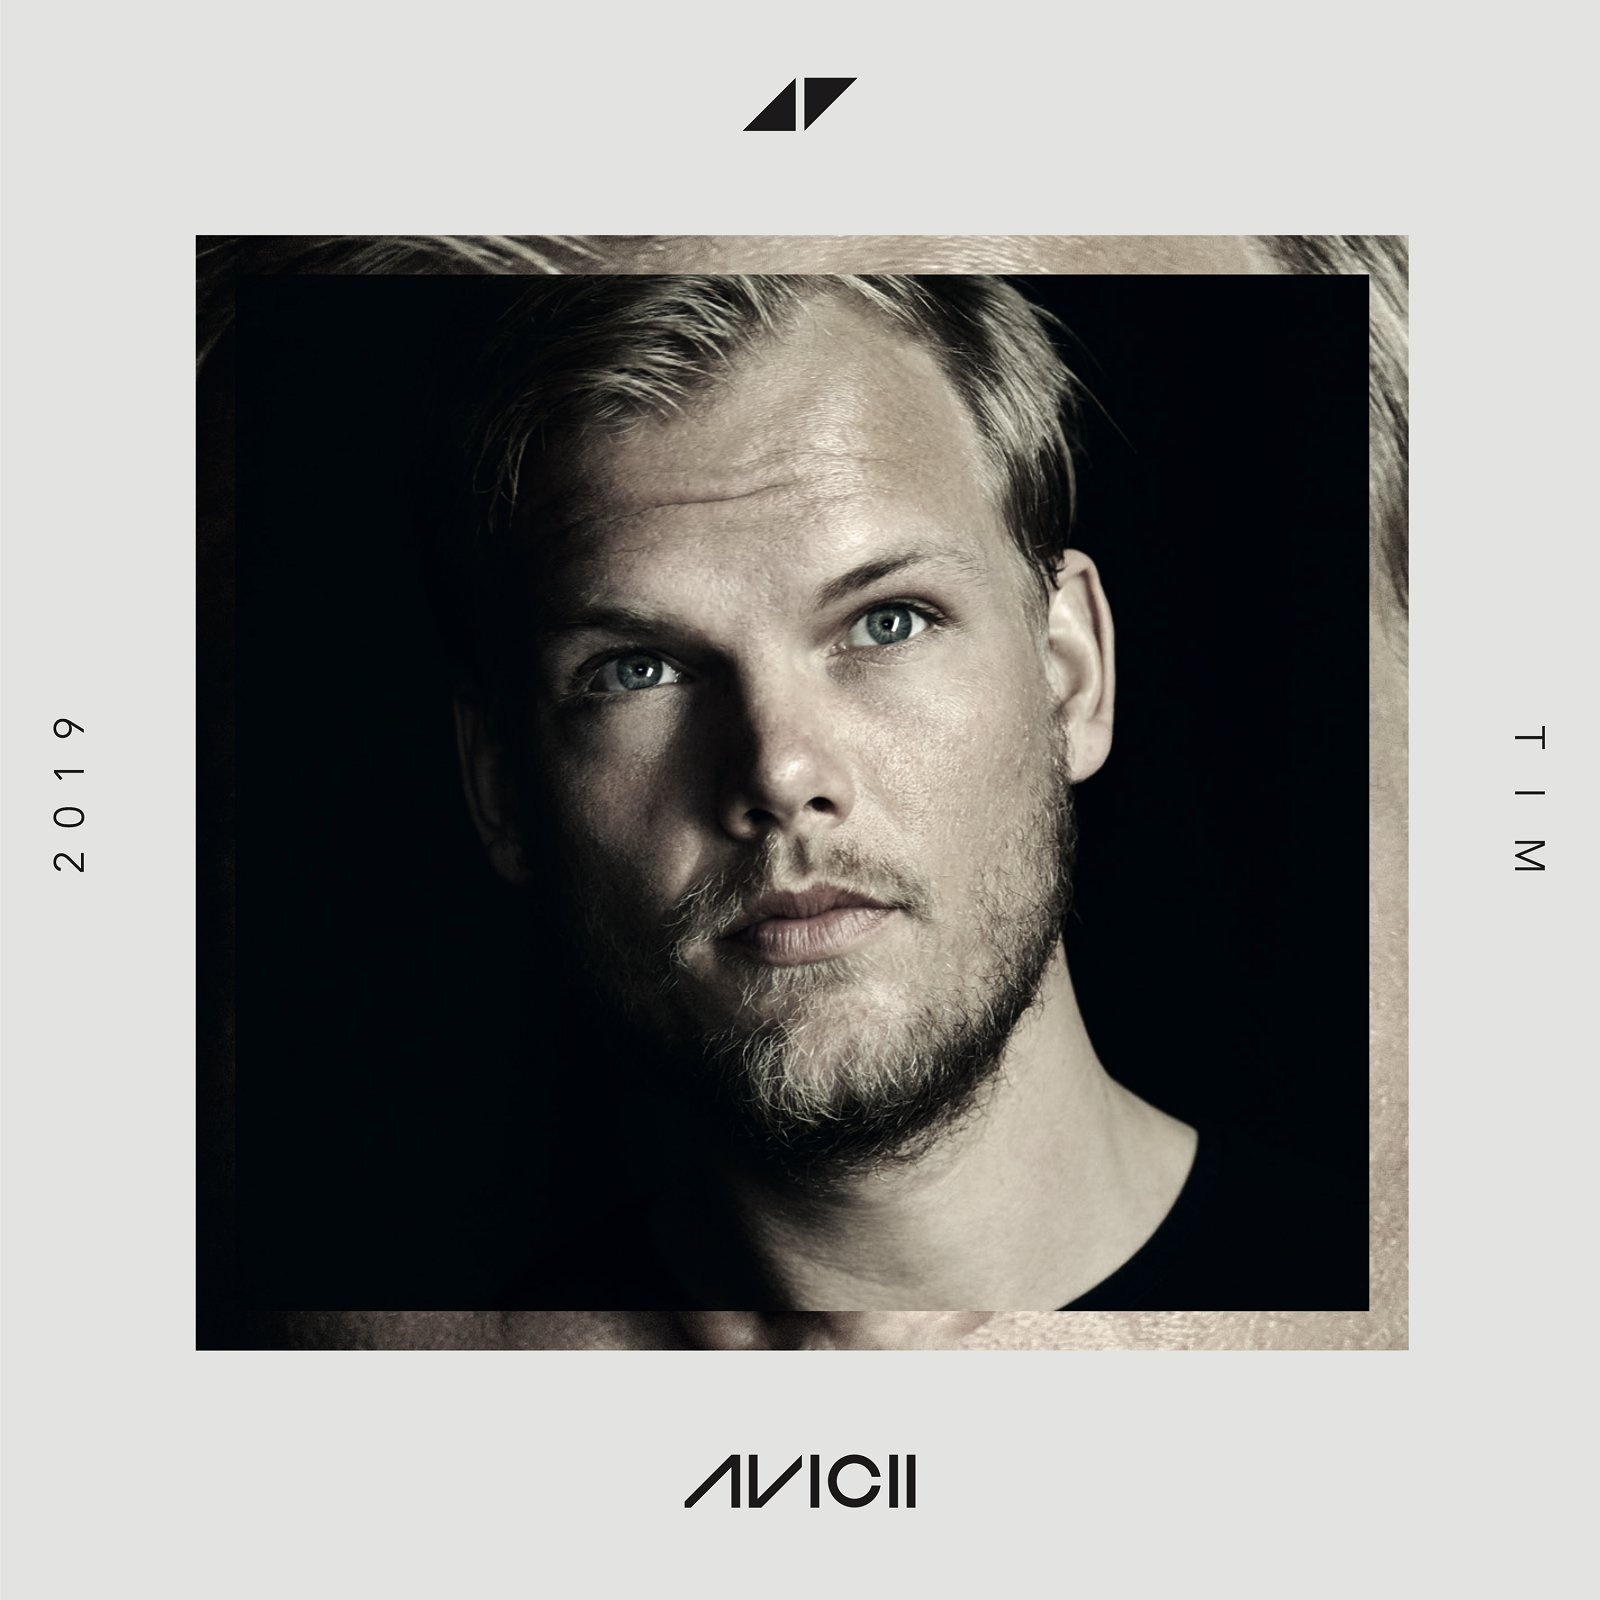 Avicii's Team Announces Posthumous Album 'Tim'